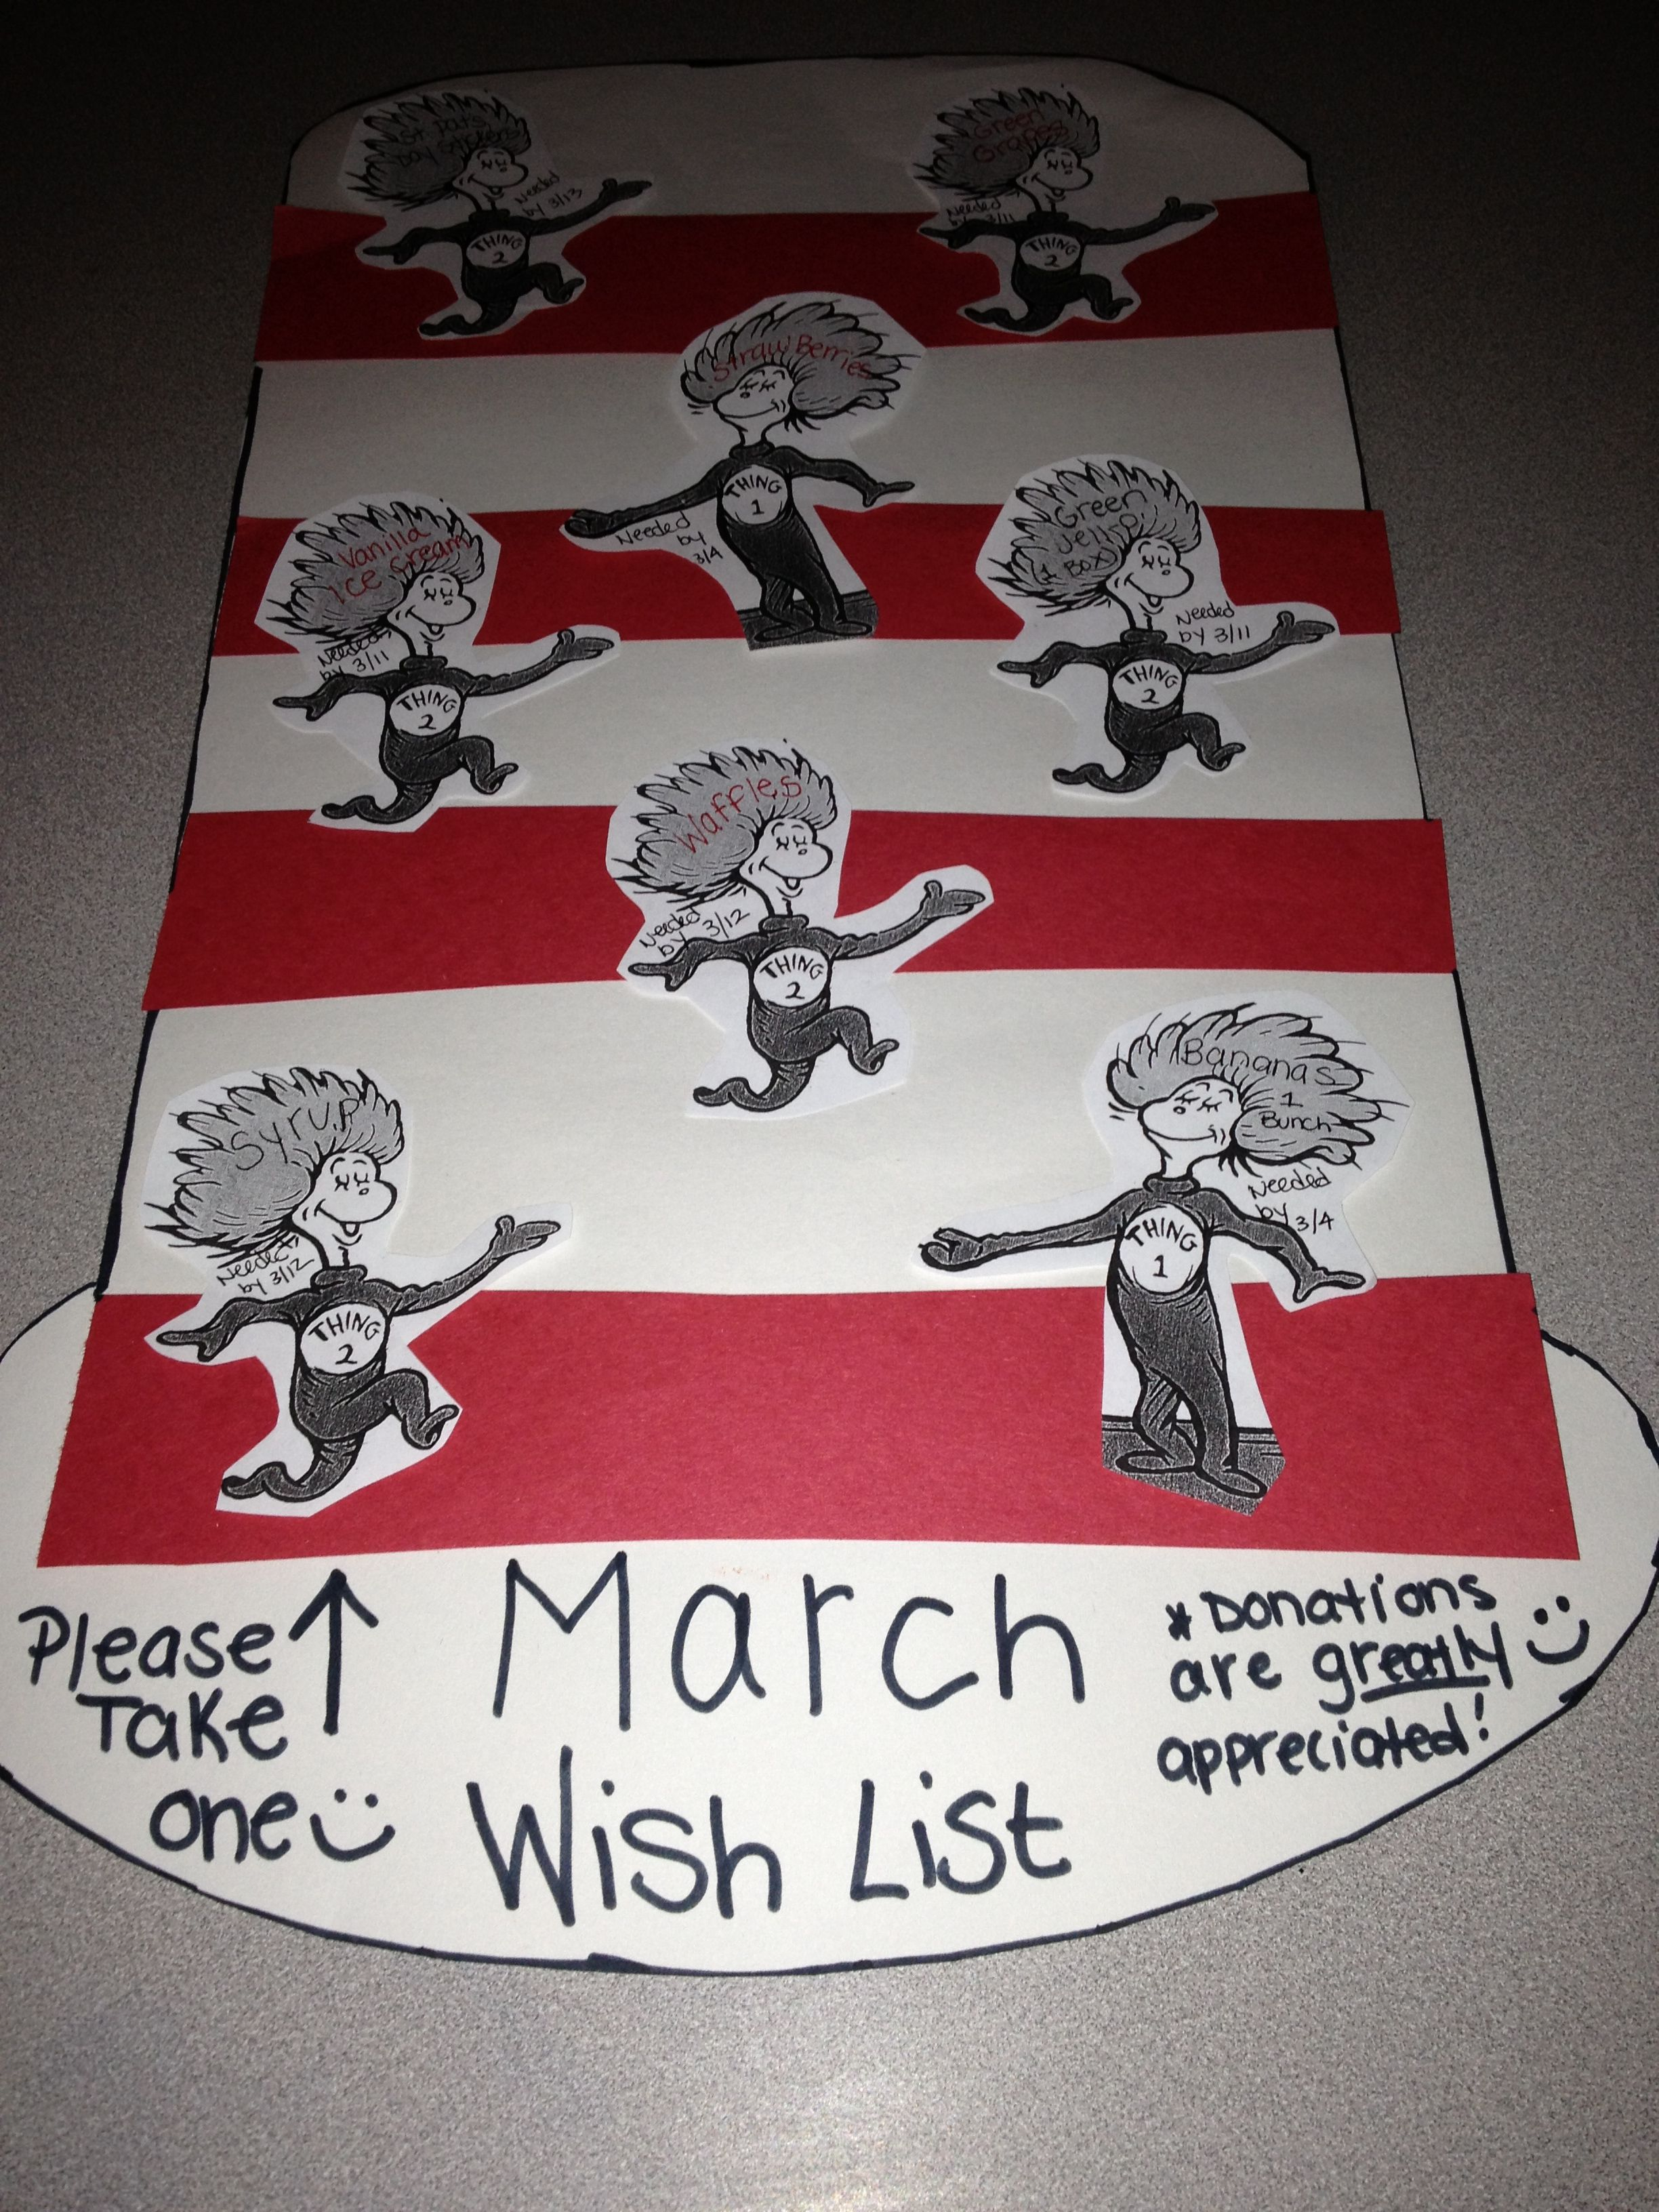 For Dr Seuss Day A Wish List For Parents To Donate Items